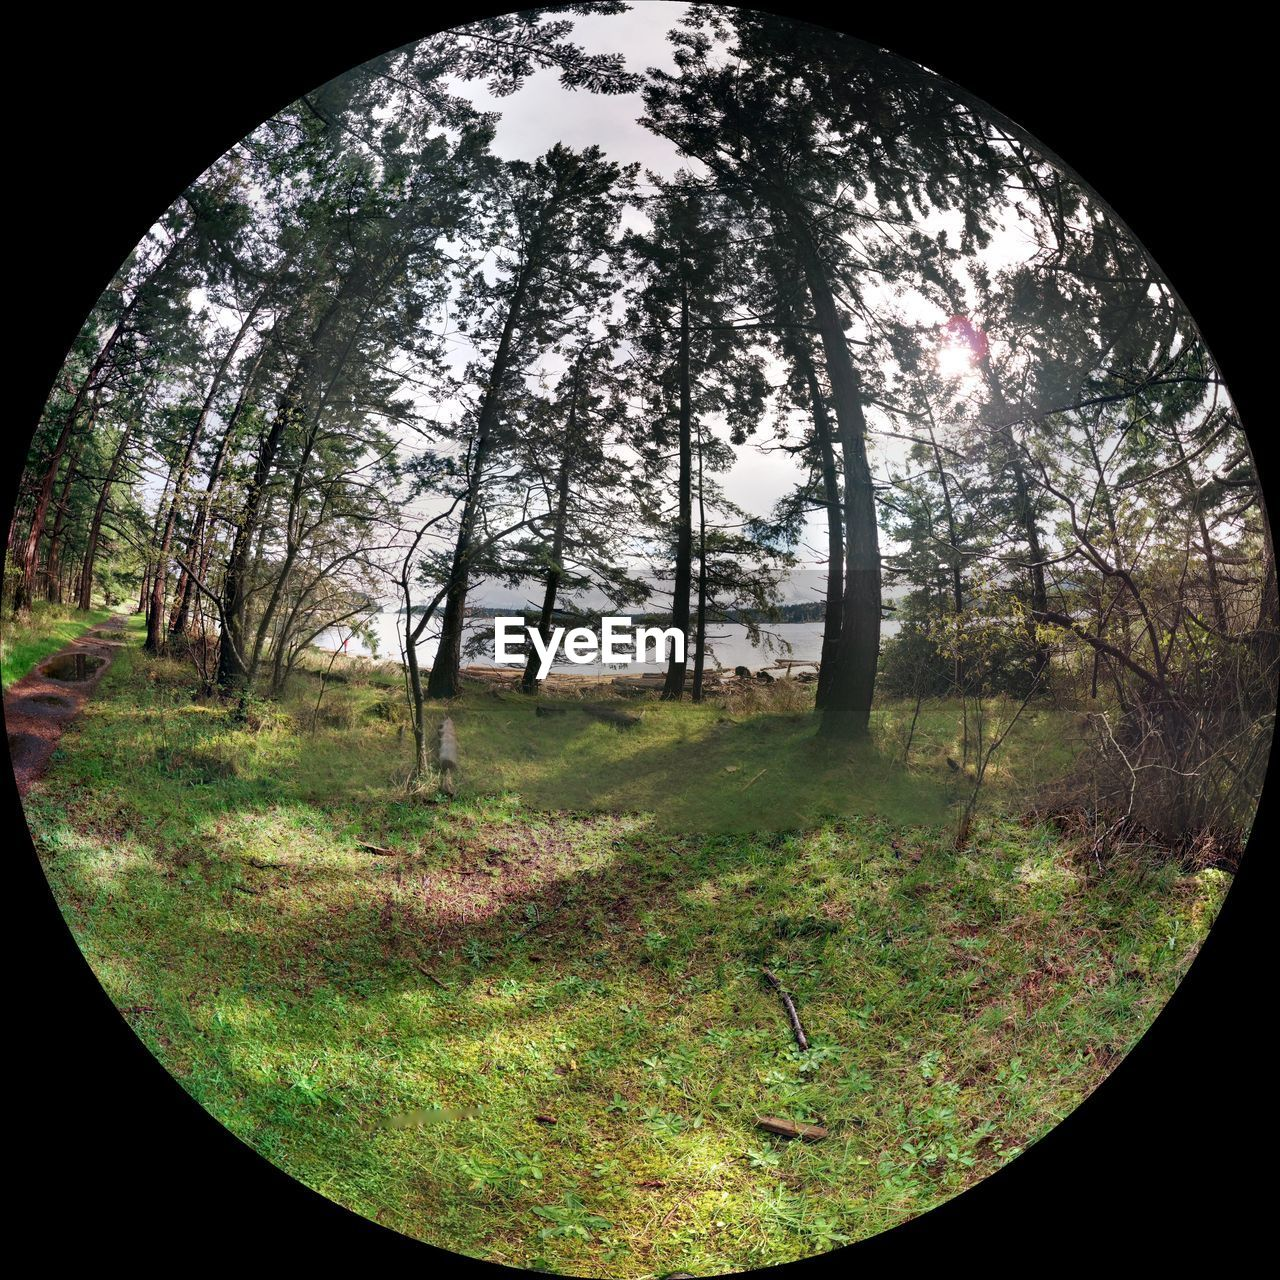 tree, nature, day, no people, tranquility, outdoors, autumn, grass, fish-eye lens, scenics, beauty in nature, sky